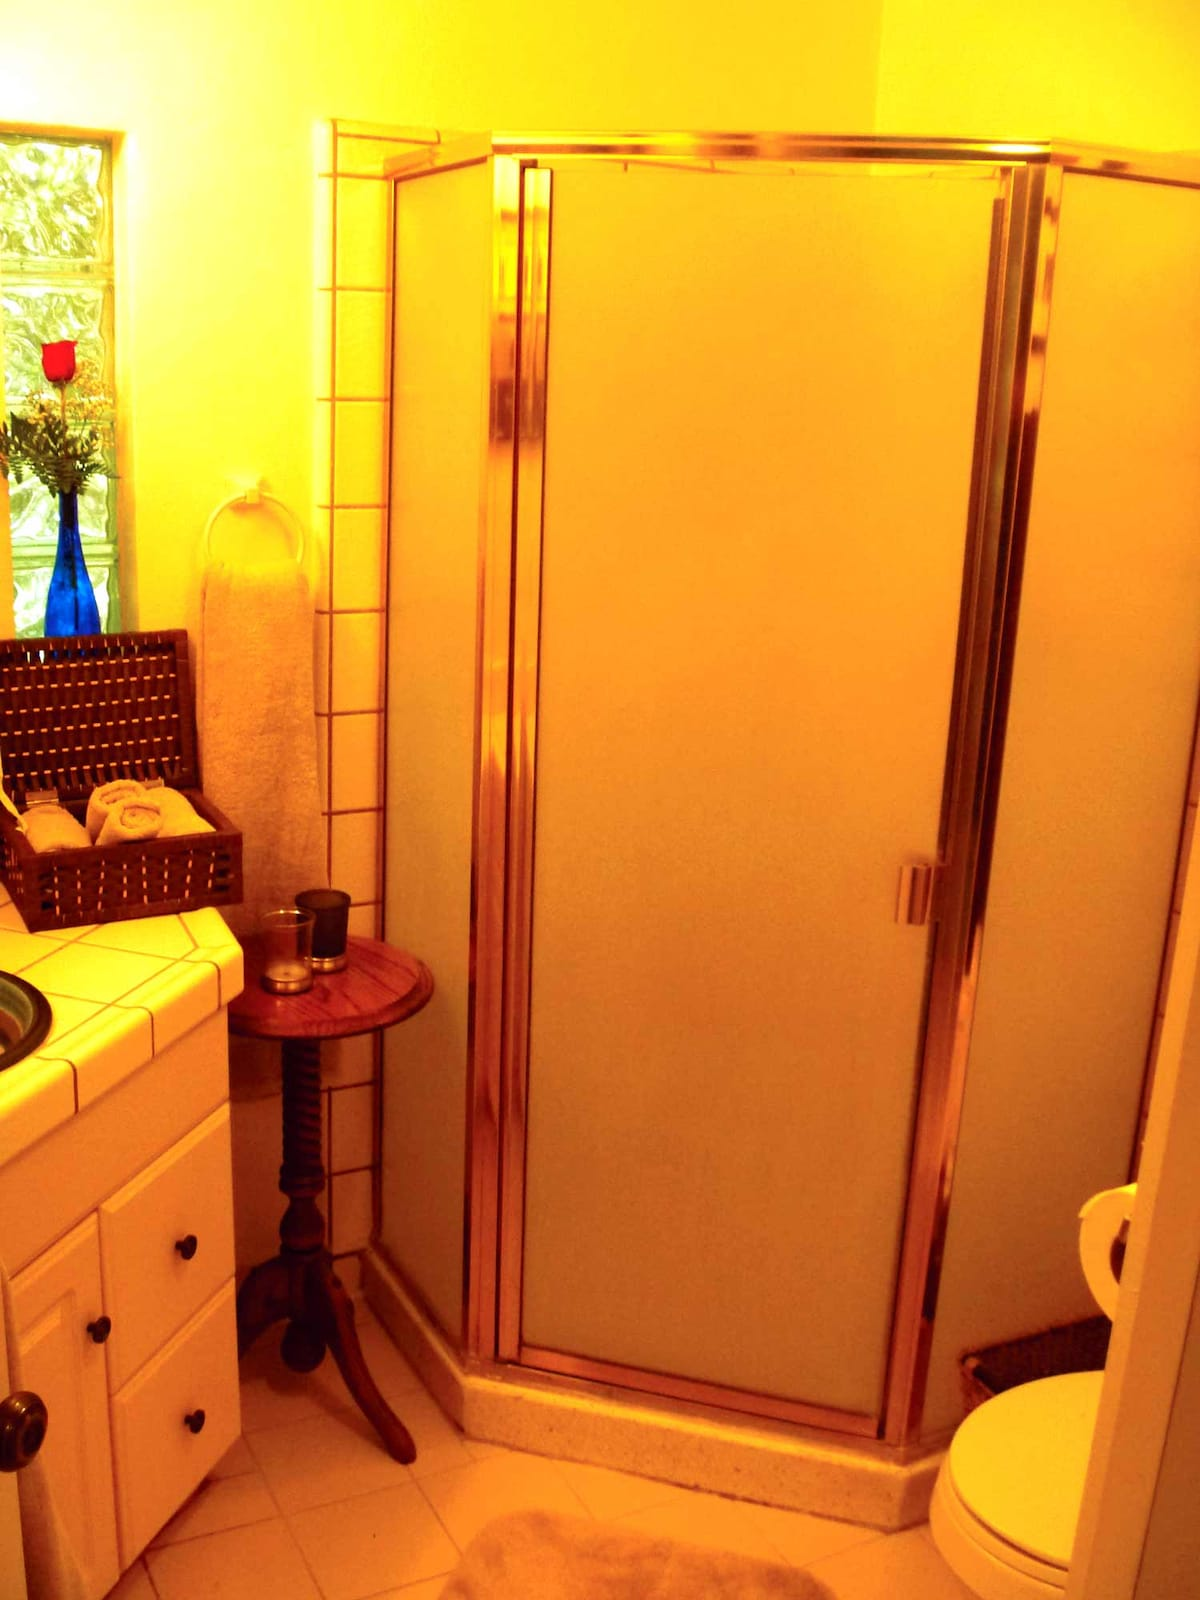 View of shower.